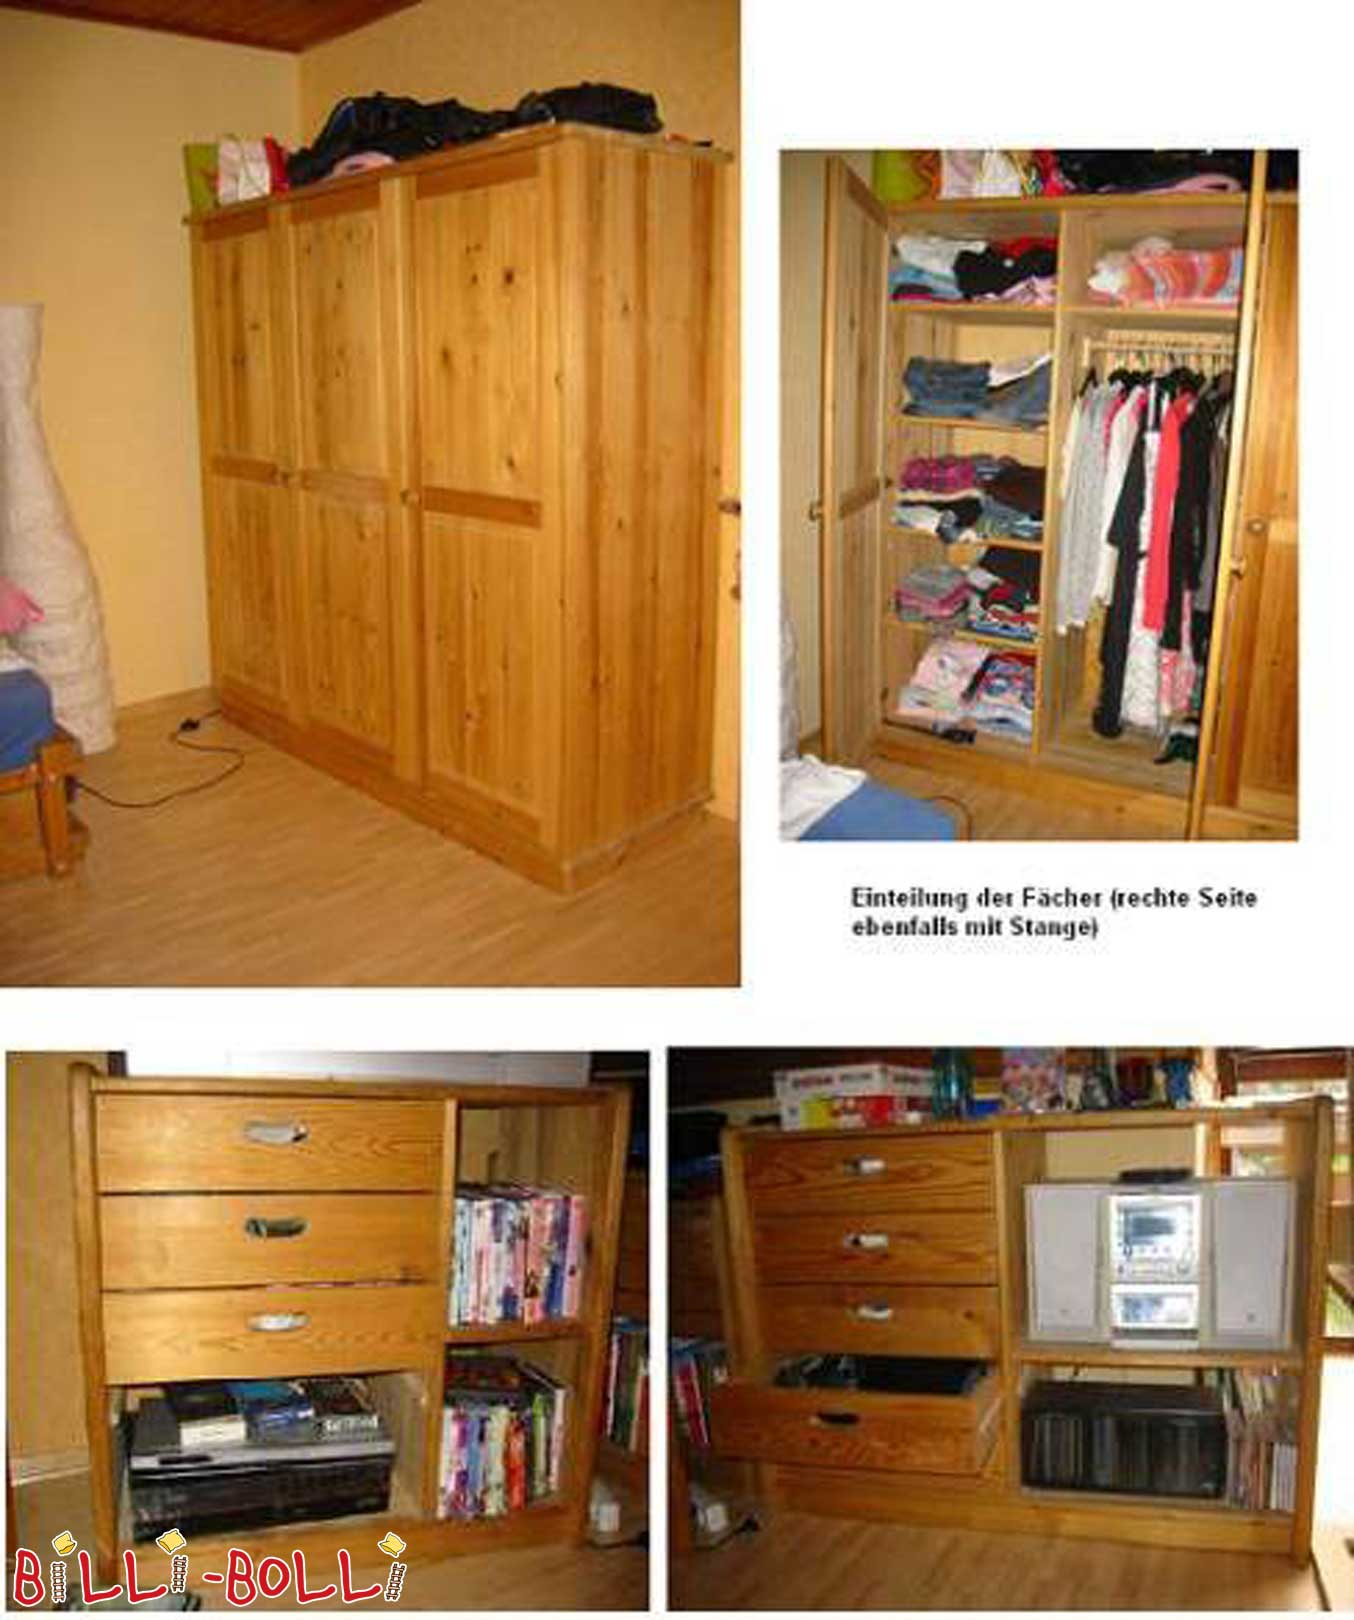 Gullibo cabinets and shelves (second hand kids' furniture)